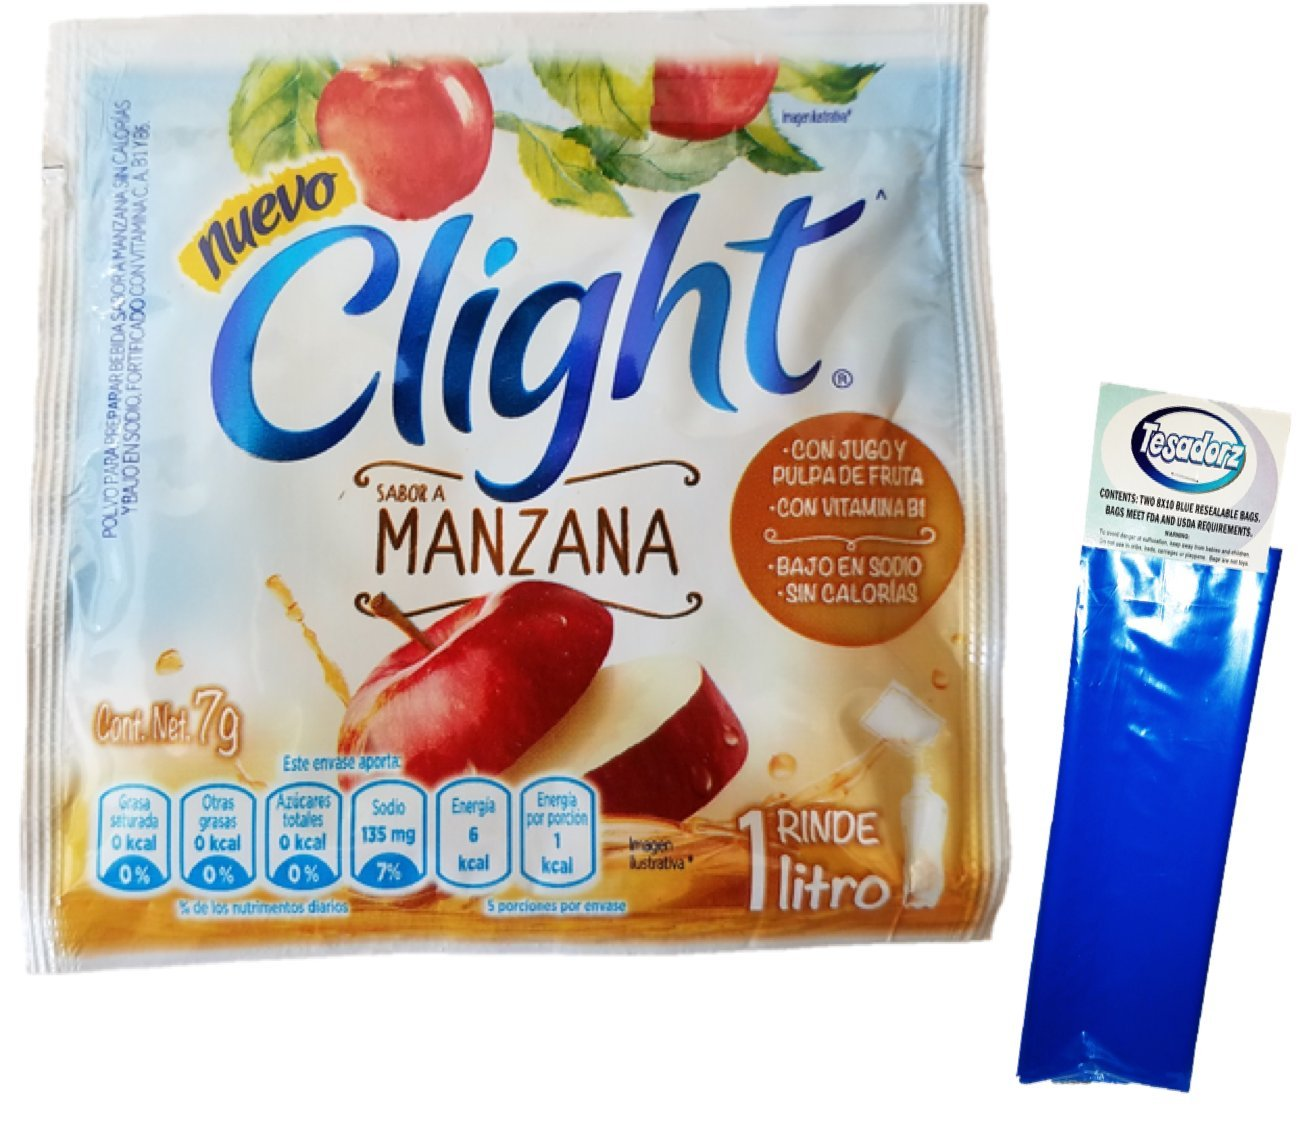 Amazon.com : Clight Horchata Powdered Drink Mix 1 Liter (Pack of 18) with Tesadorz Resealable Bags : Grocery & Gourmet Food